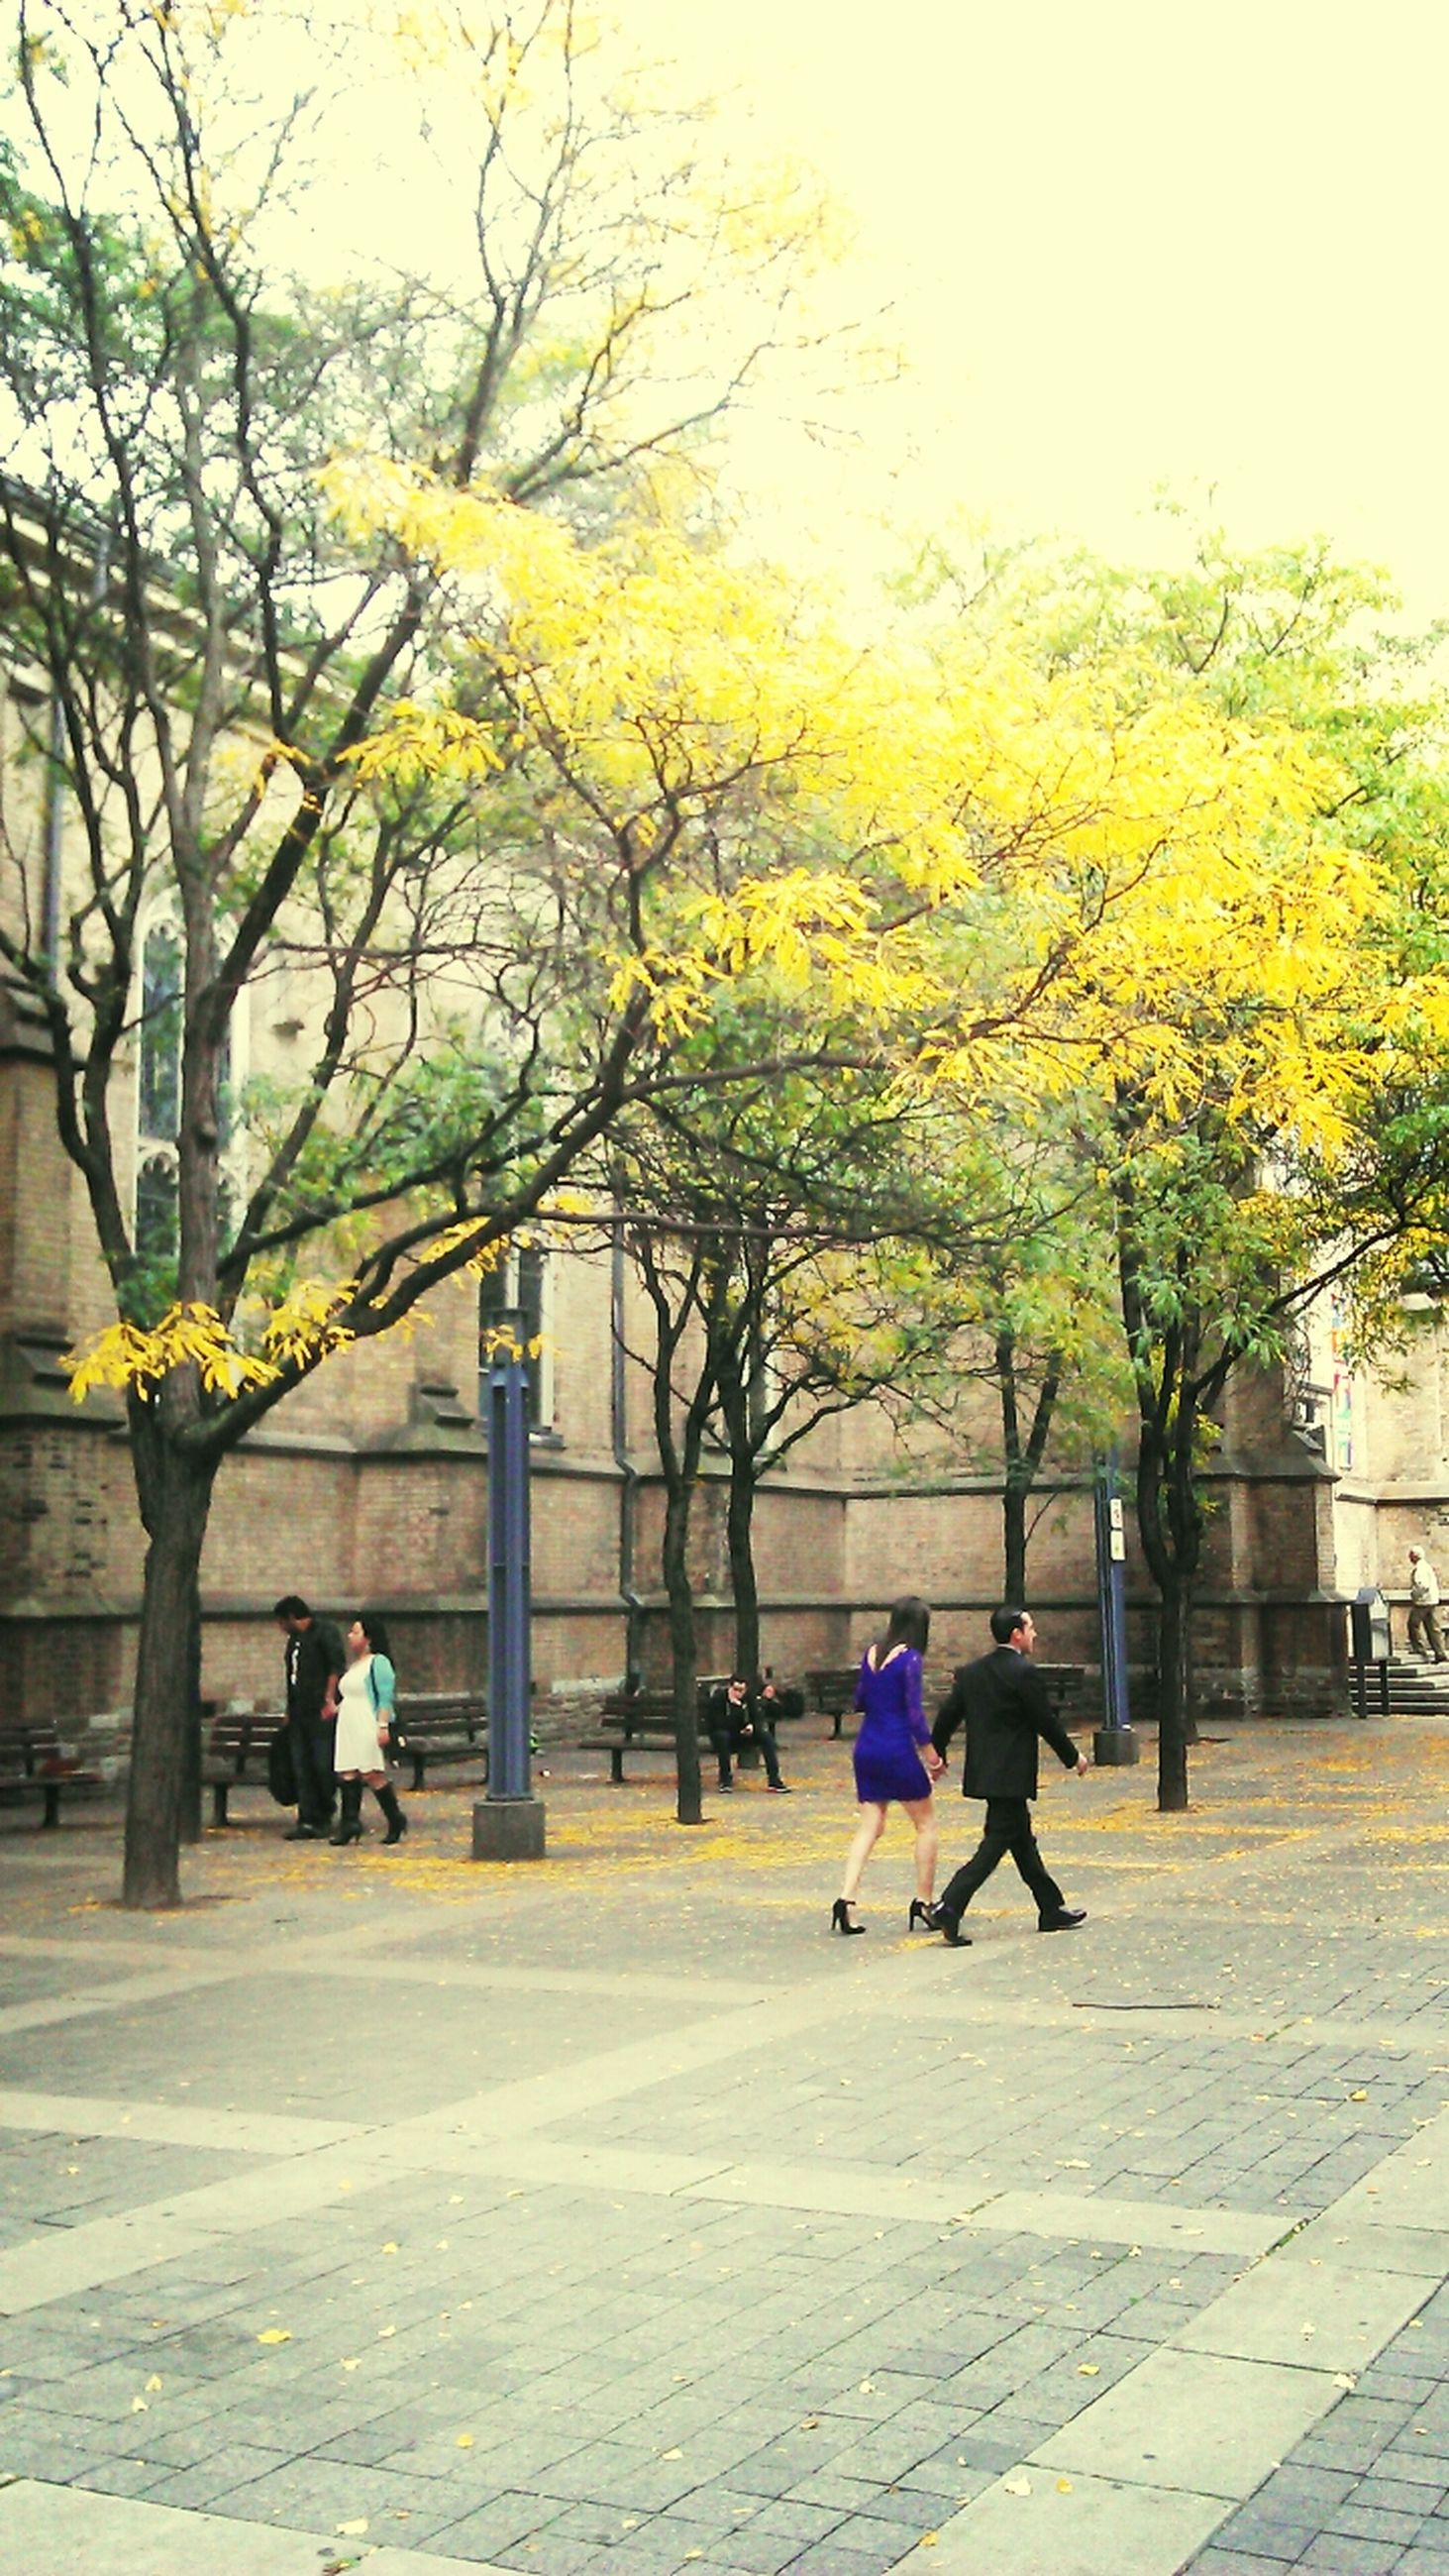 tree, lifestyles, men, full length, leisure activity, rear view, person, walking, autumn, park - man made space, built structure, togetherness, change, branch, childhood, building exterior, architecture, city